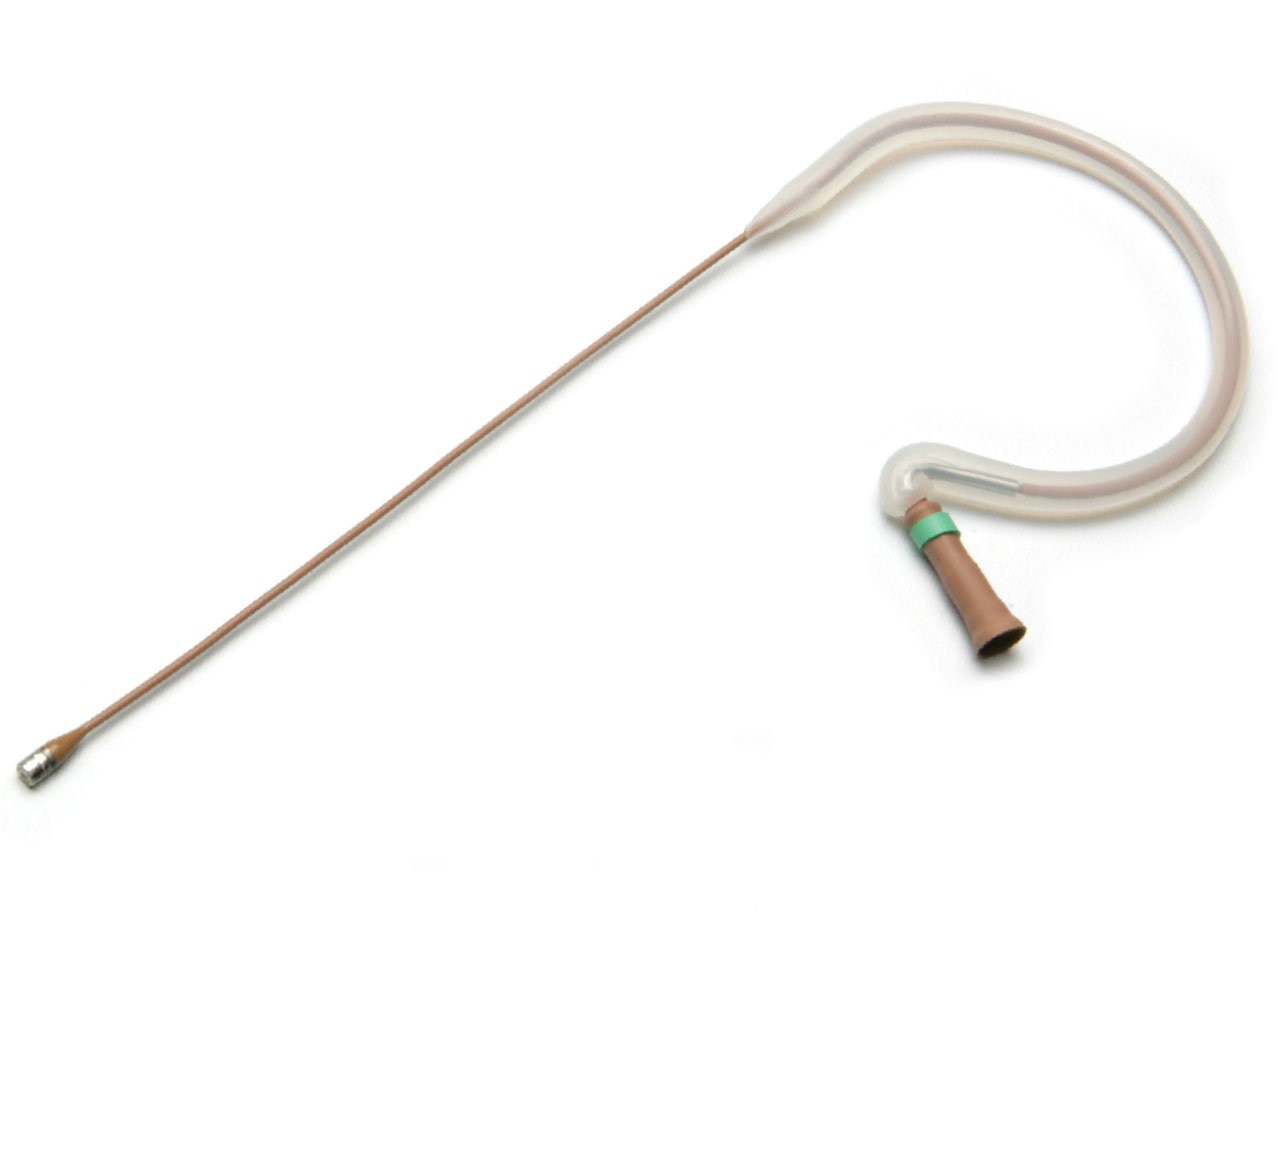 E6i Earset Microphone in Tan for Electrovoice Wireless Transmitters